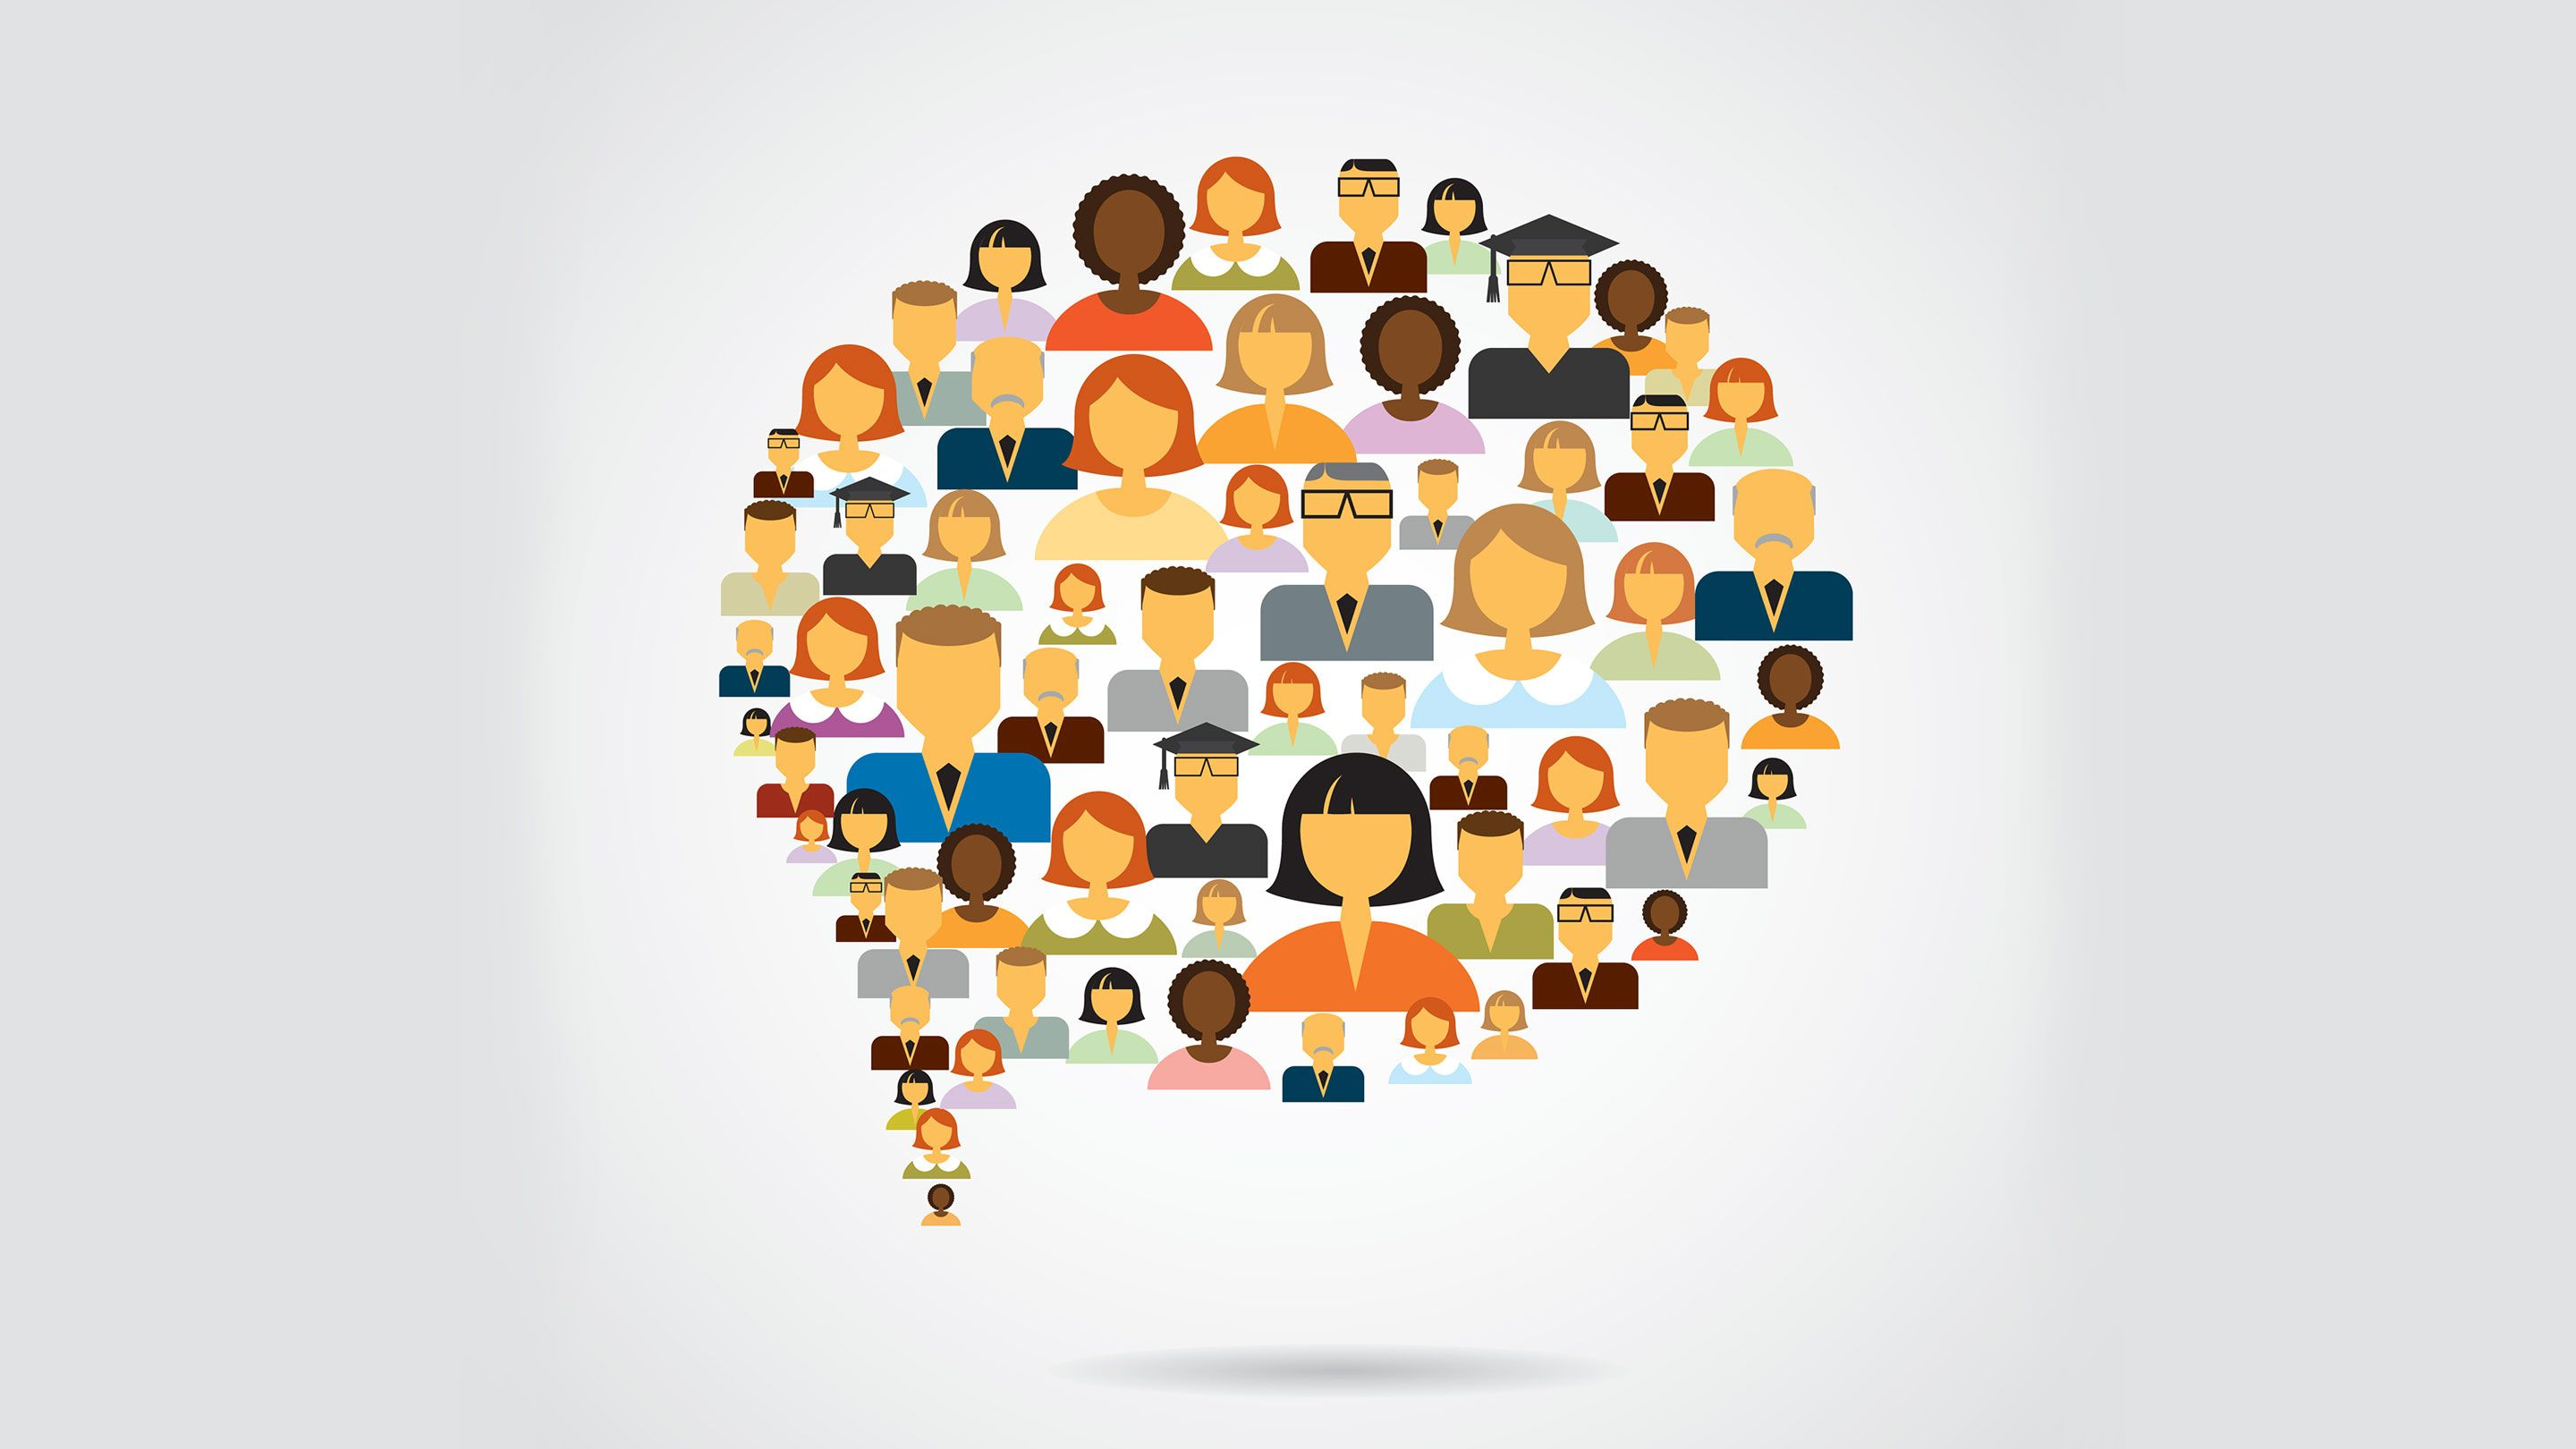 Illustration showing a speech bubble made up of a multitude of small images of people's heads